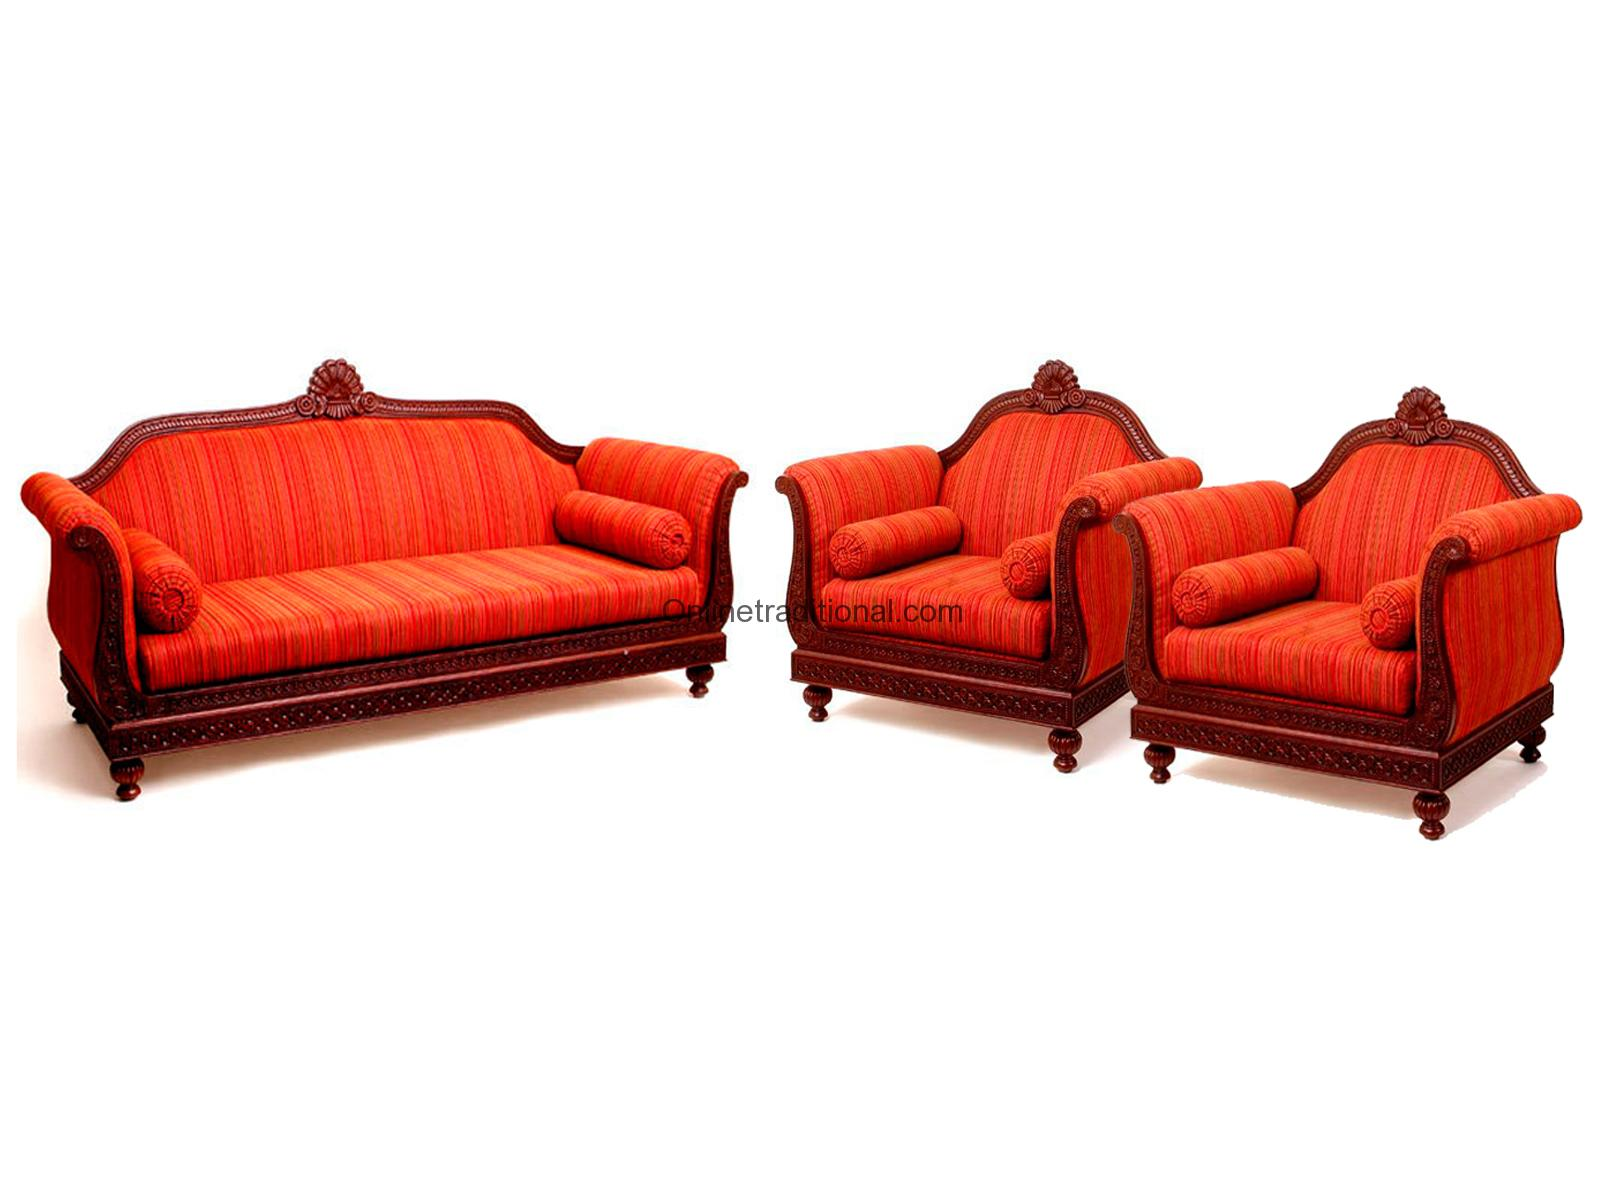 sofa sets indian teak wood sofa set design for home pearl handicrafts. Black Bedroom Furniture Sets. Home Design Ideas